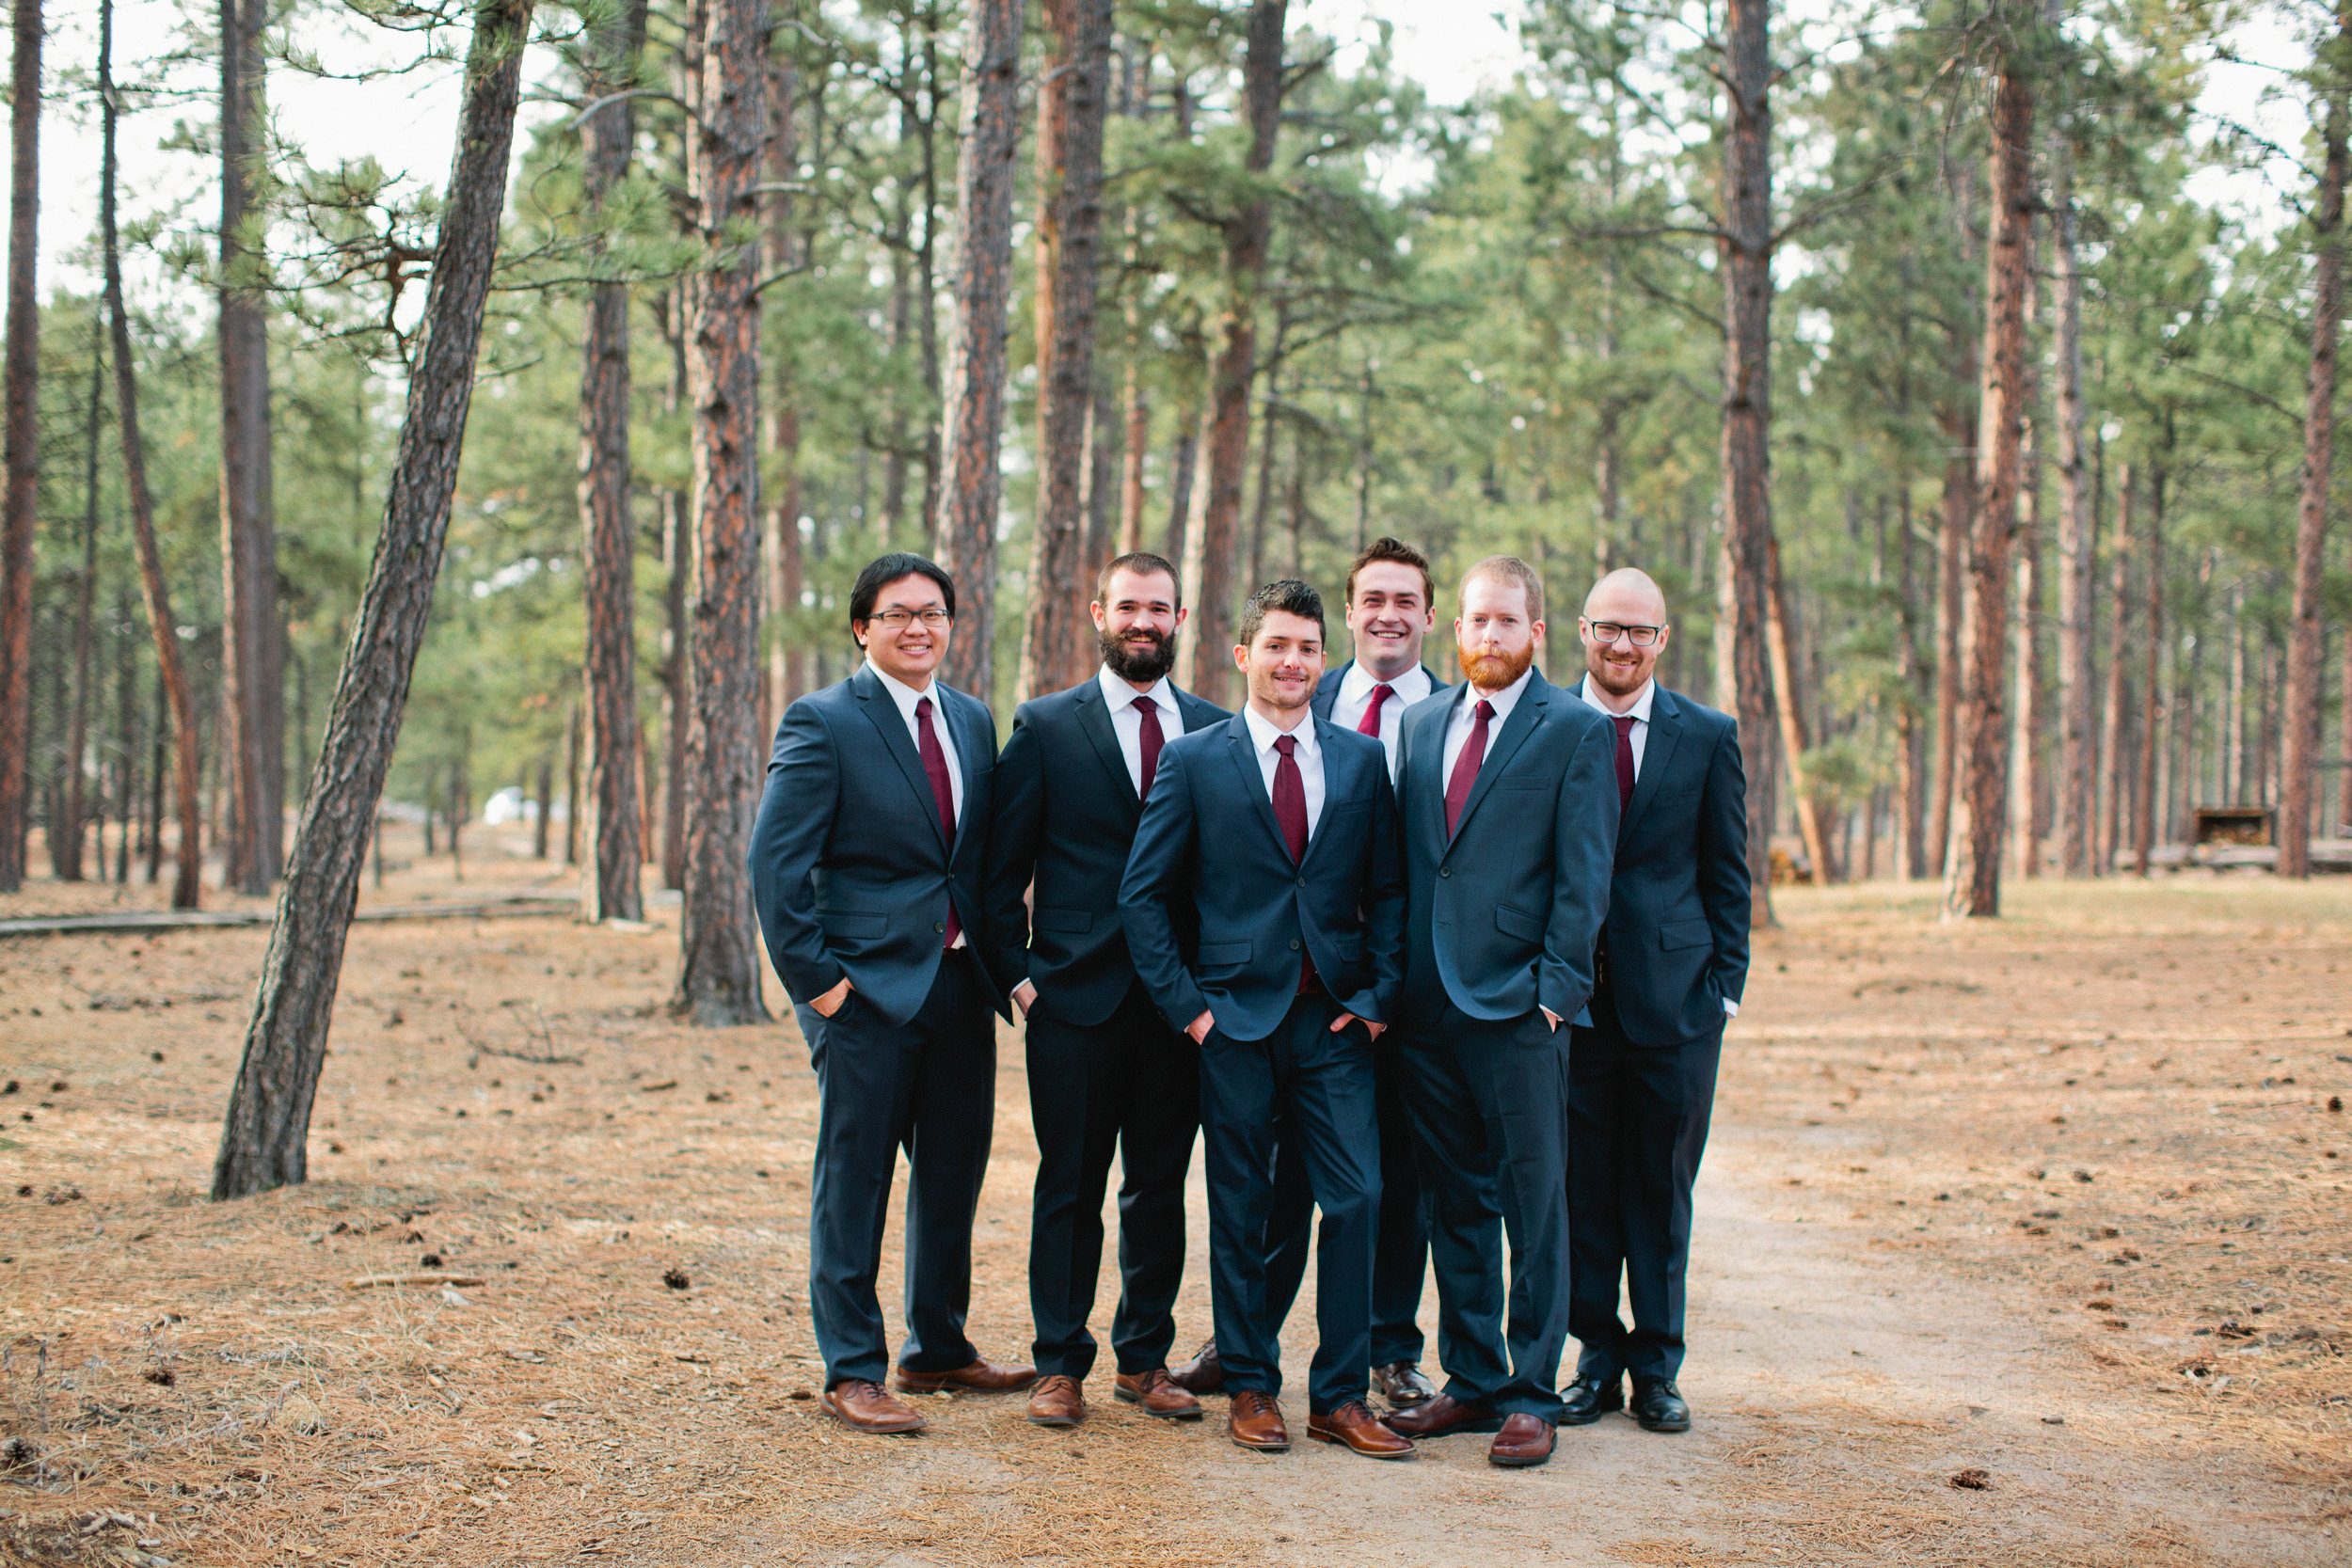 La Foret wedding venue and photography